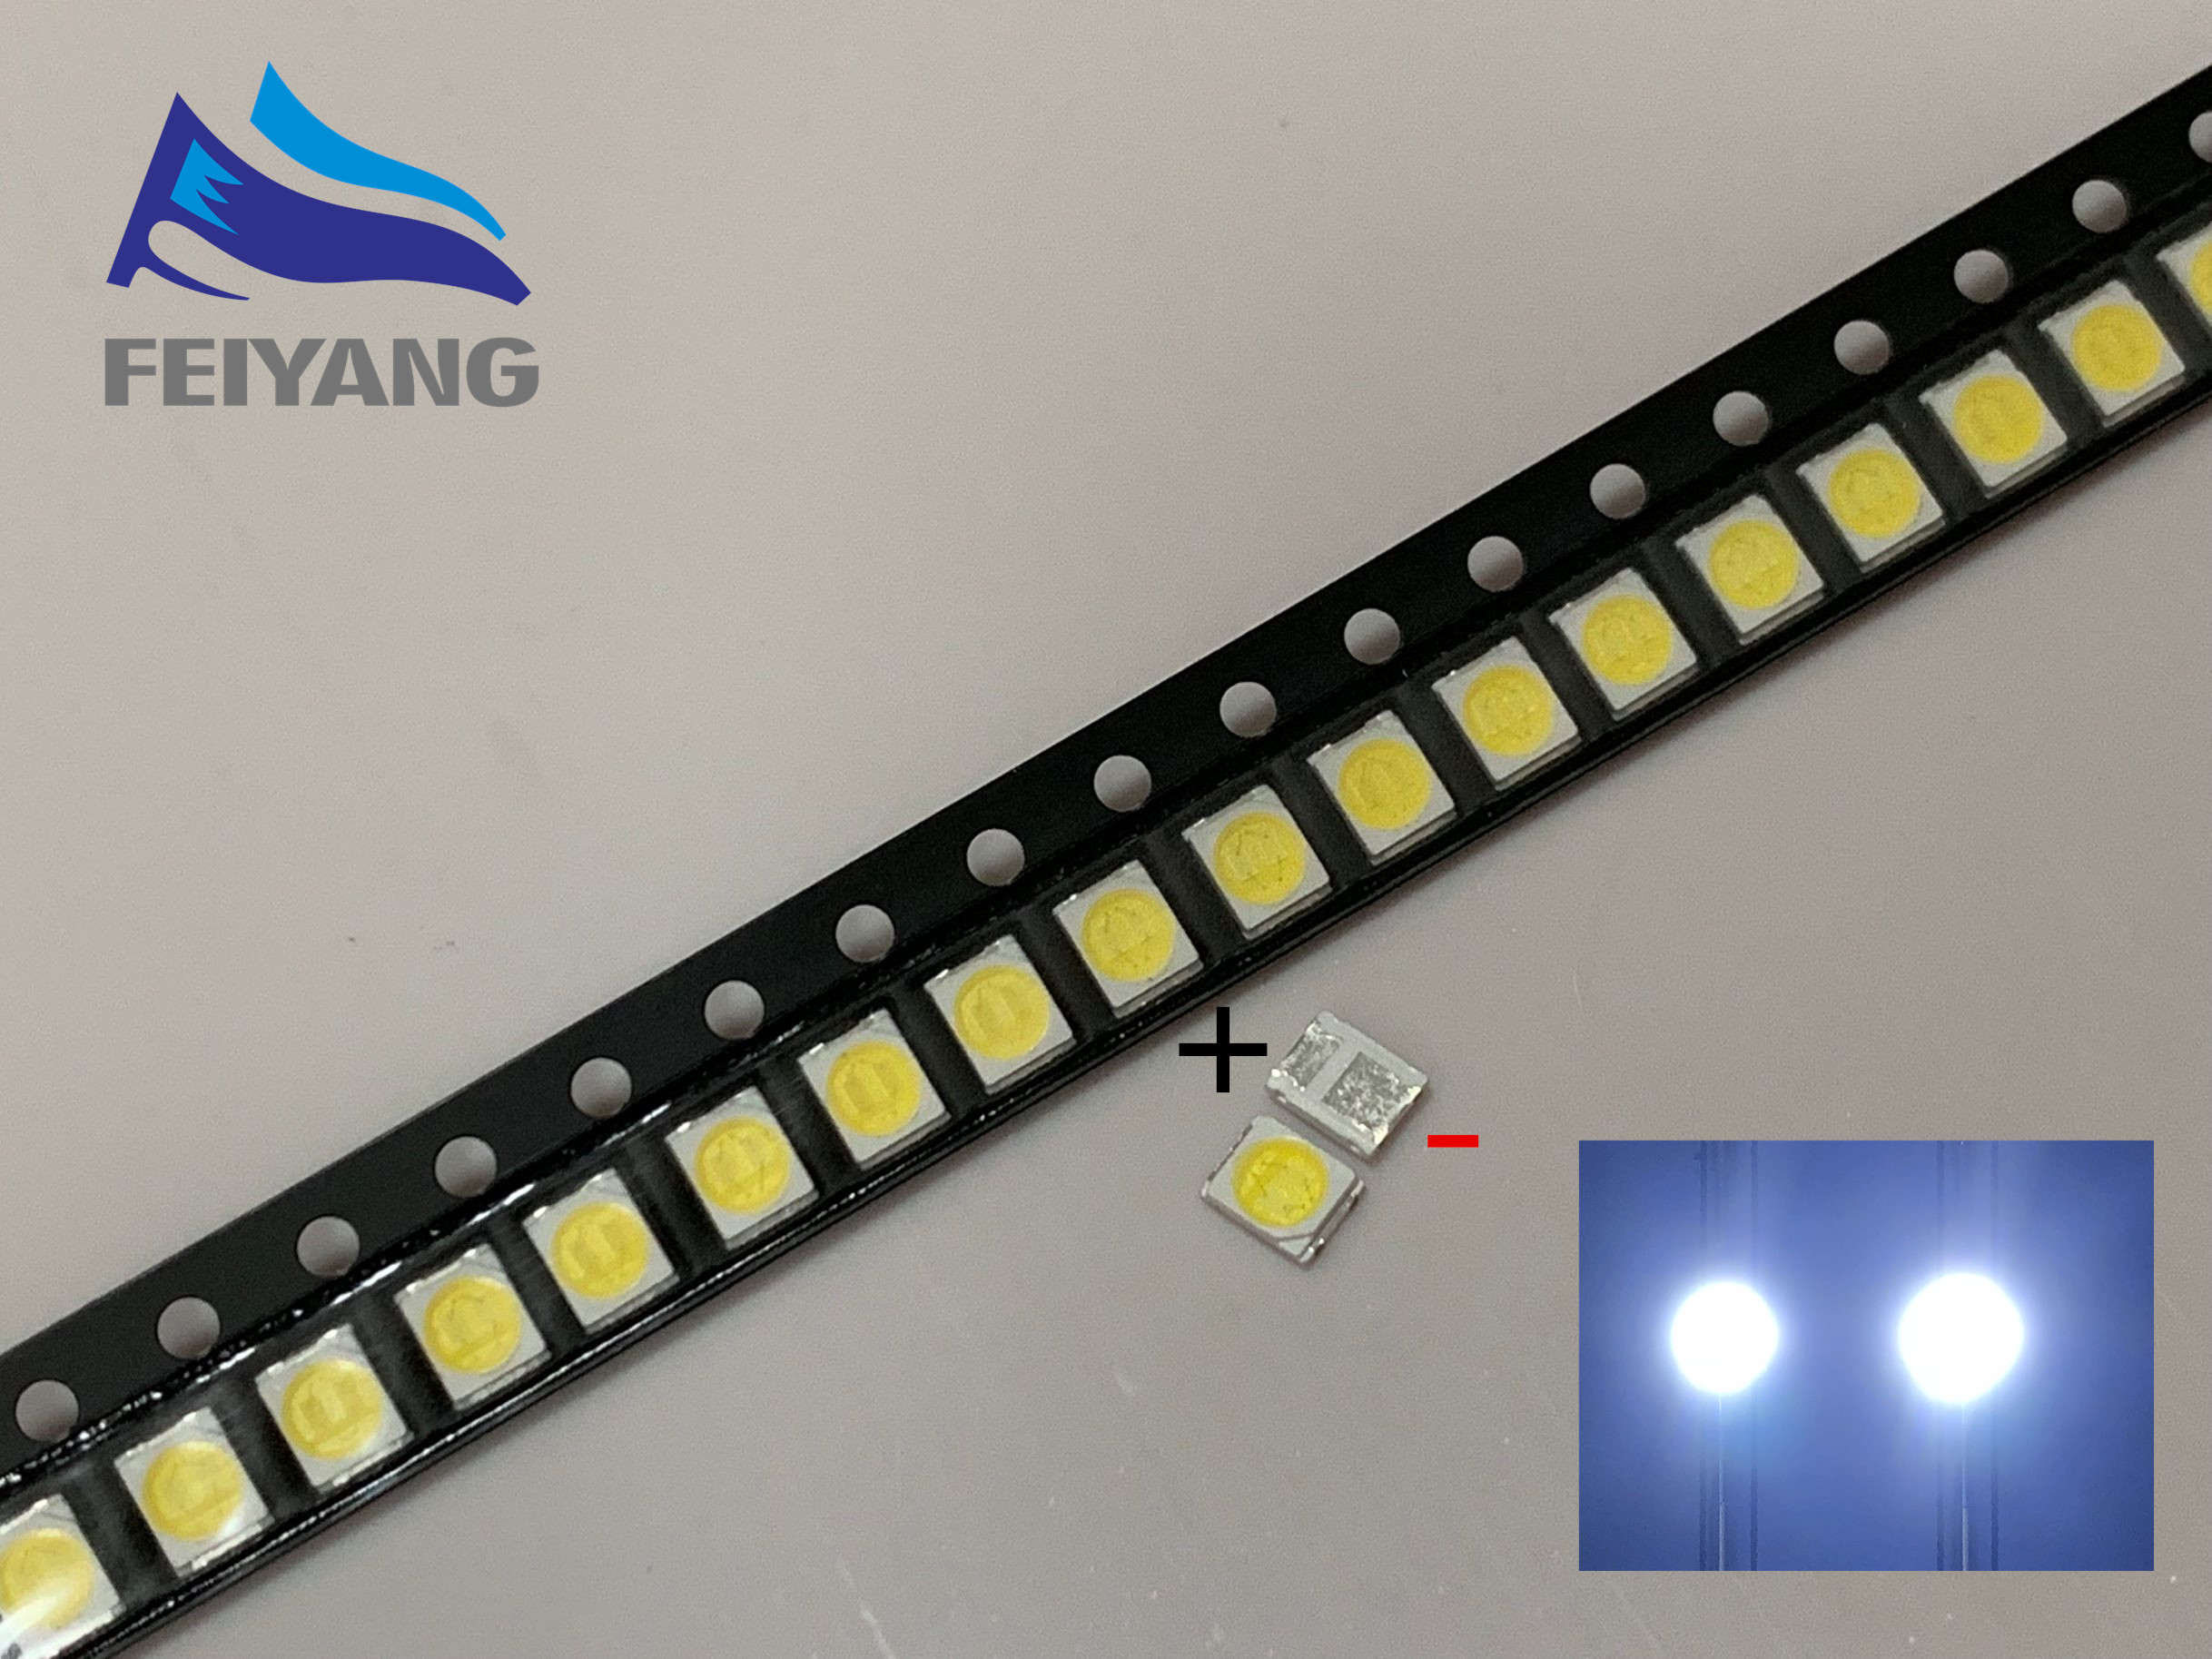 50PCS Original LEXTAR <font><b>2835</b></font> 3528 1210 <font><b>3V</b></font> <font><b>1w</b></font>-2W SMD <font><b>LED</b></font> For Repair TV Backlight Cold white LCD Backlight <font><b>LED</b></font> image